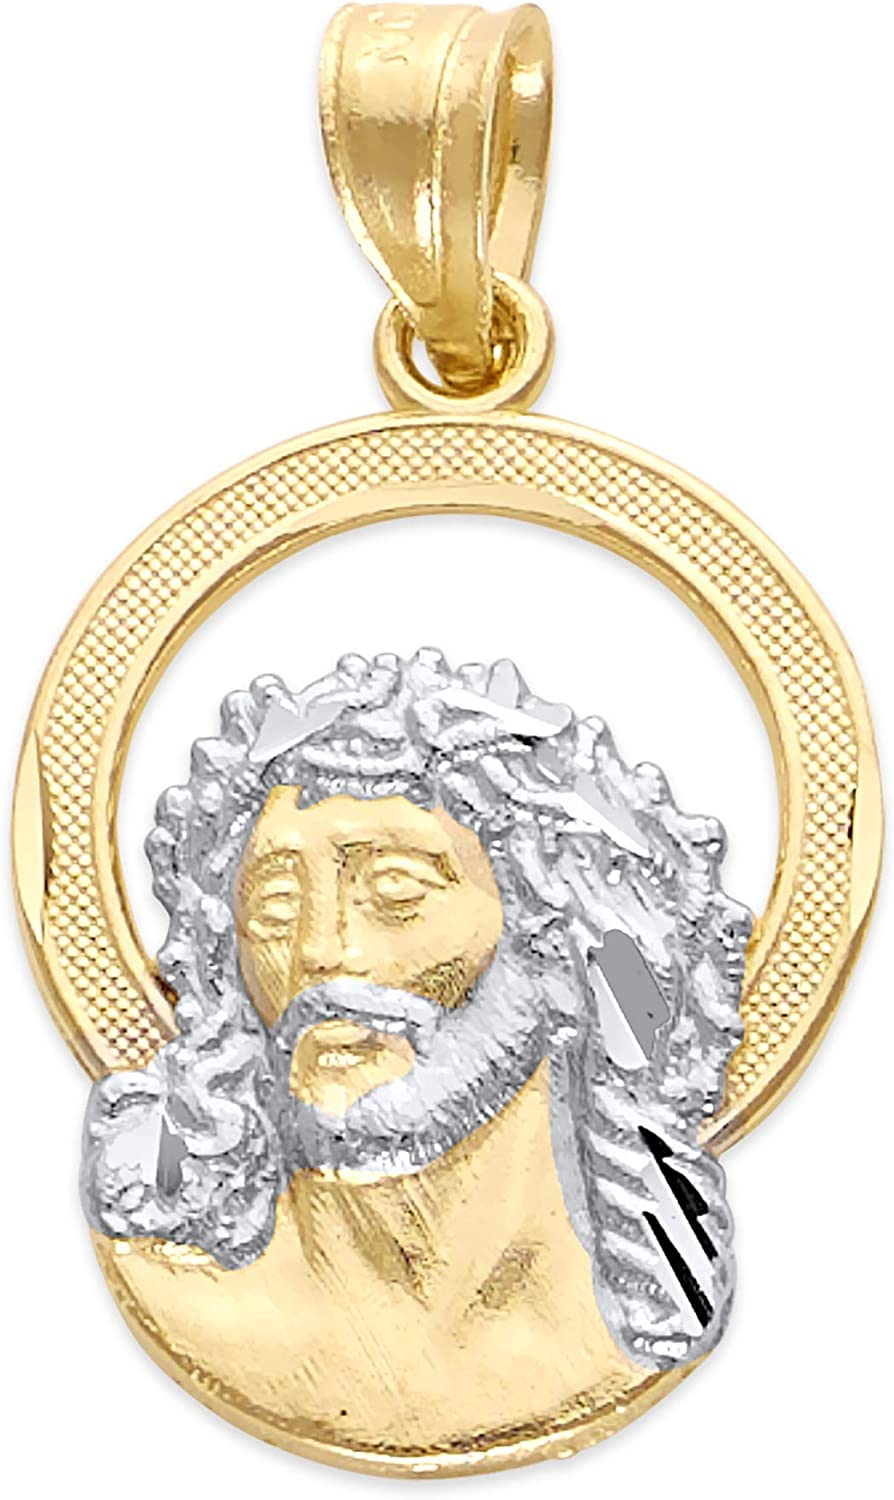 10k Real Solid Gold Jesus Piece Pendant, Two Tone Religious Charm Jewelry of Christ